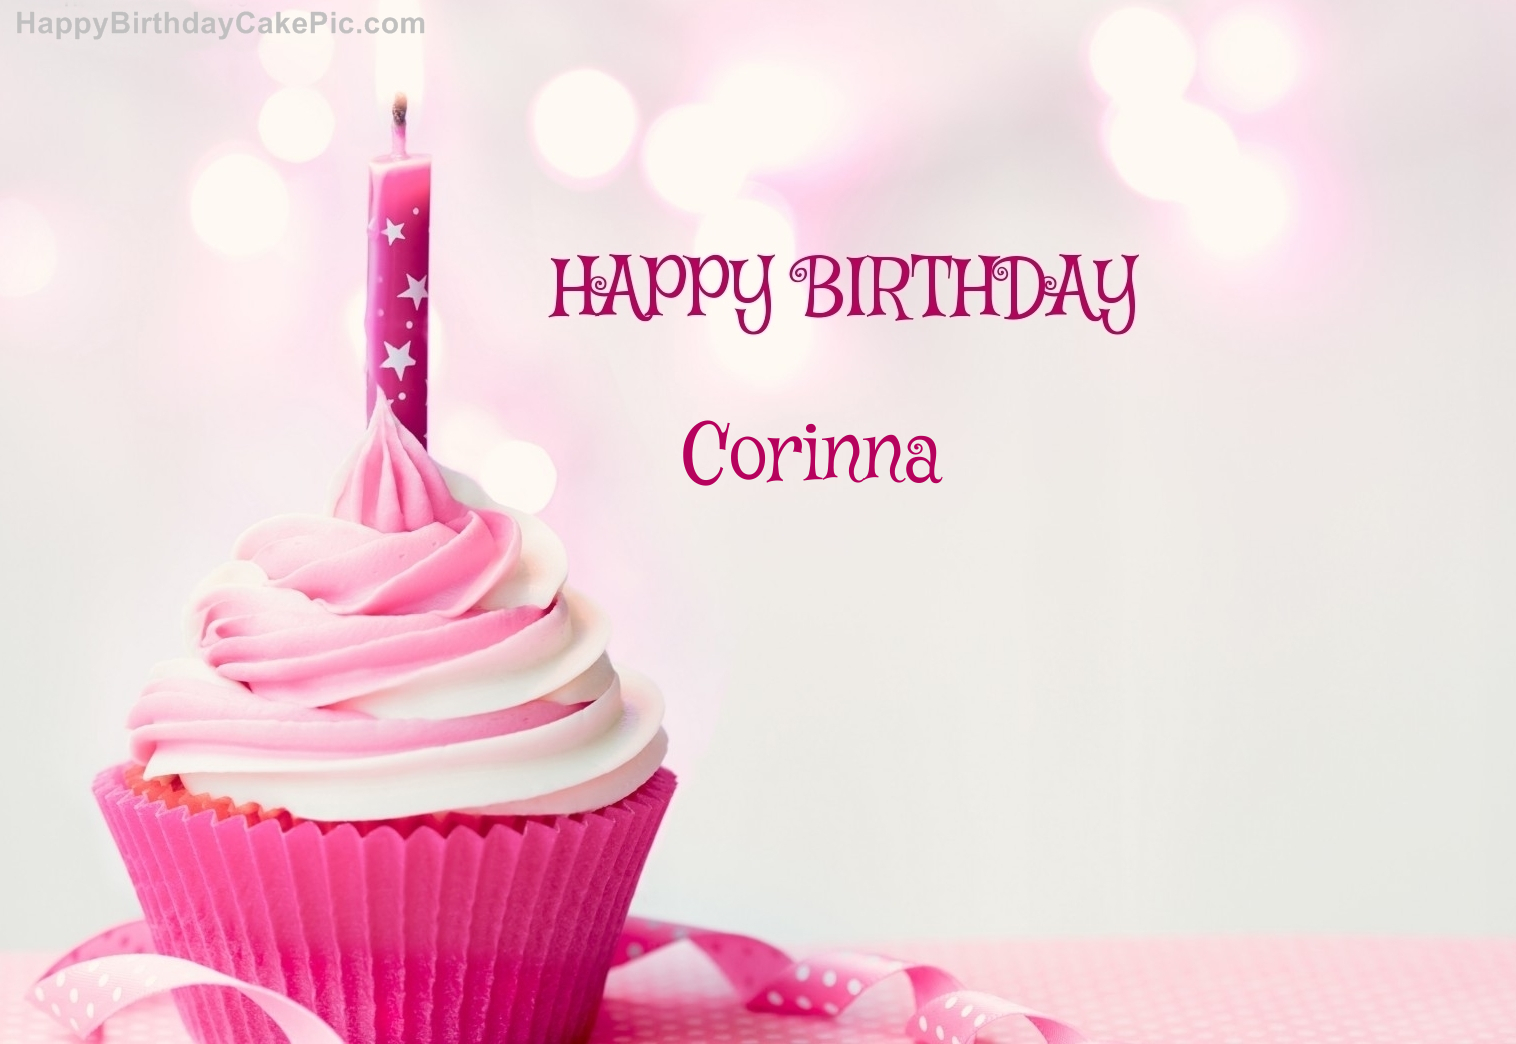 Happy Birthday Cupcake Candle Pink Cake For Corinna